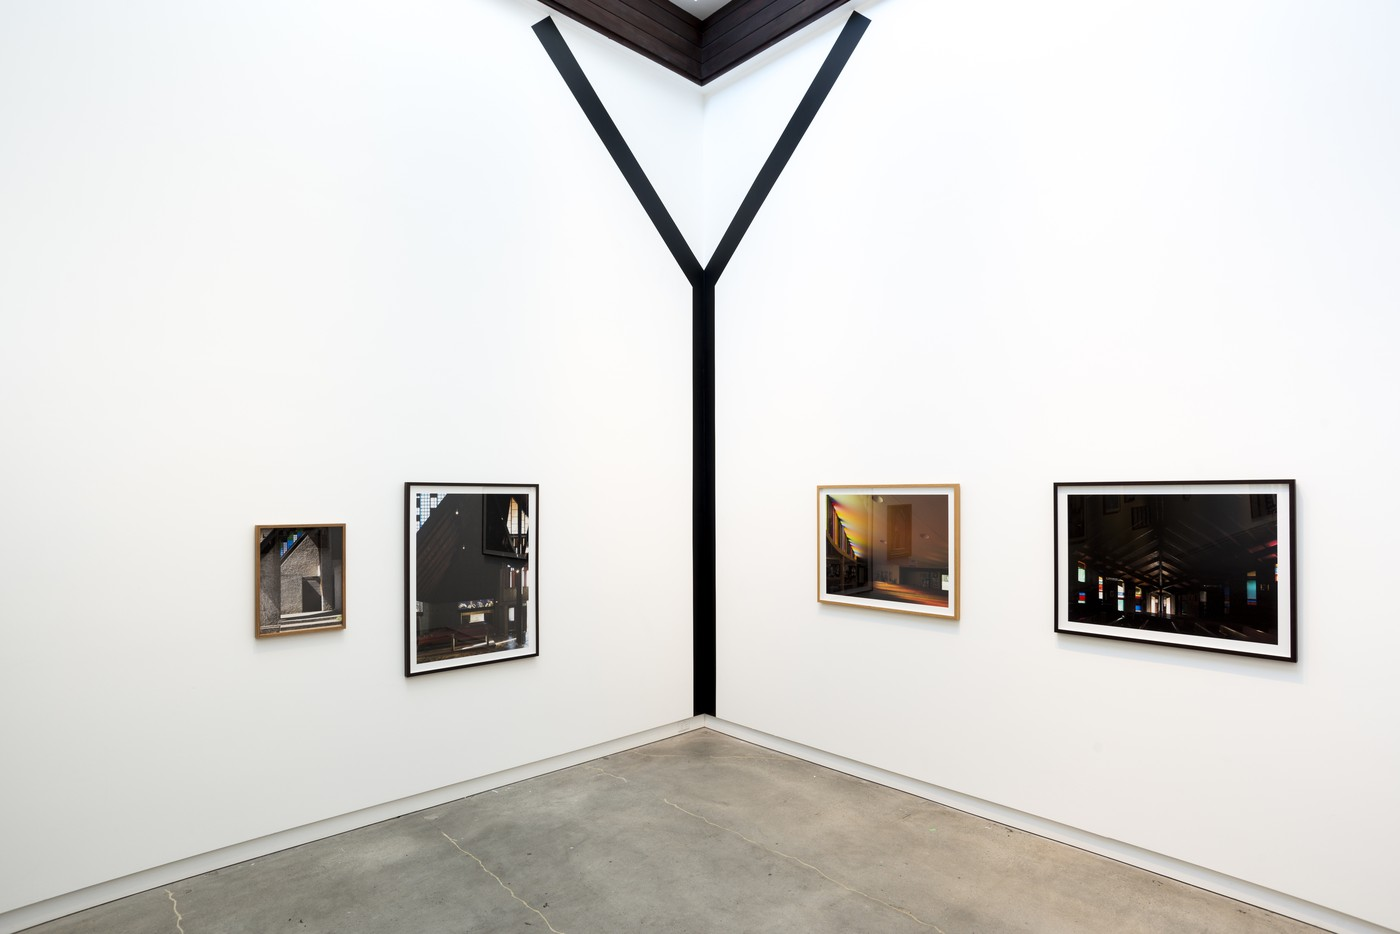 Installation view of John Scott Works at CoCA, 2020. Photographer: Mitchell Bright